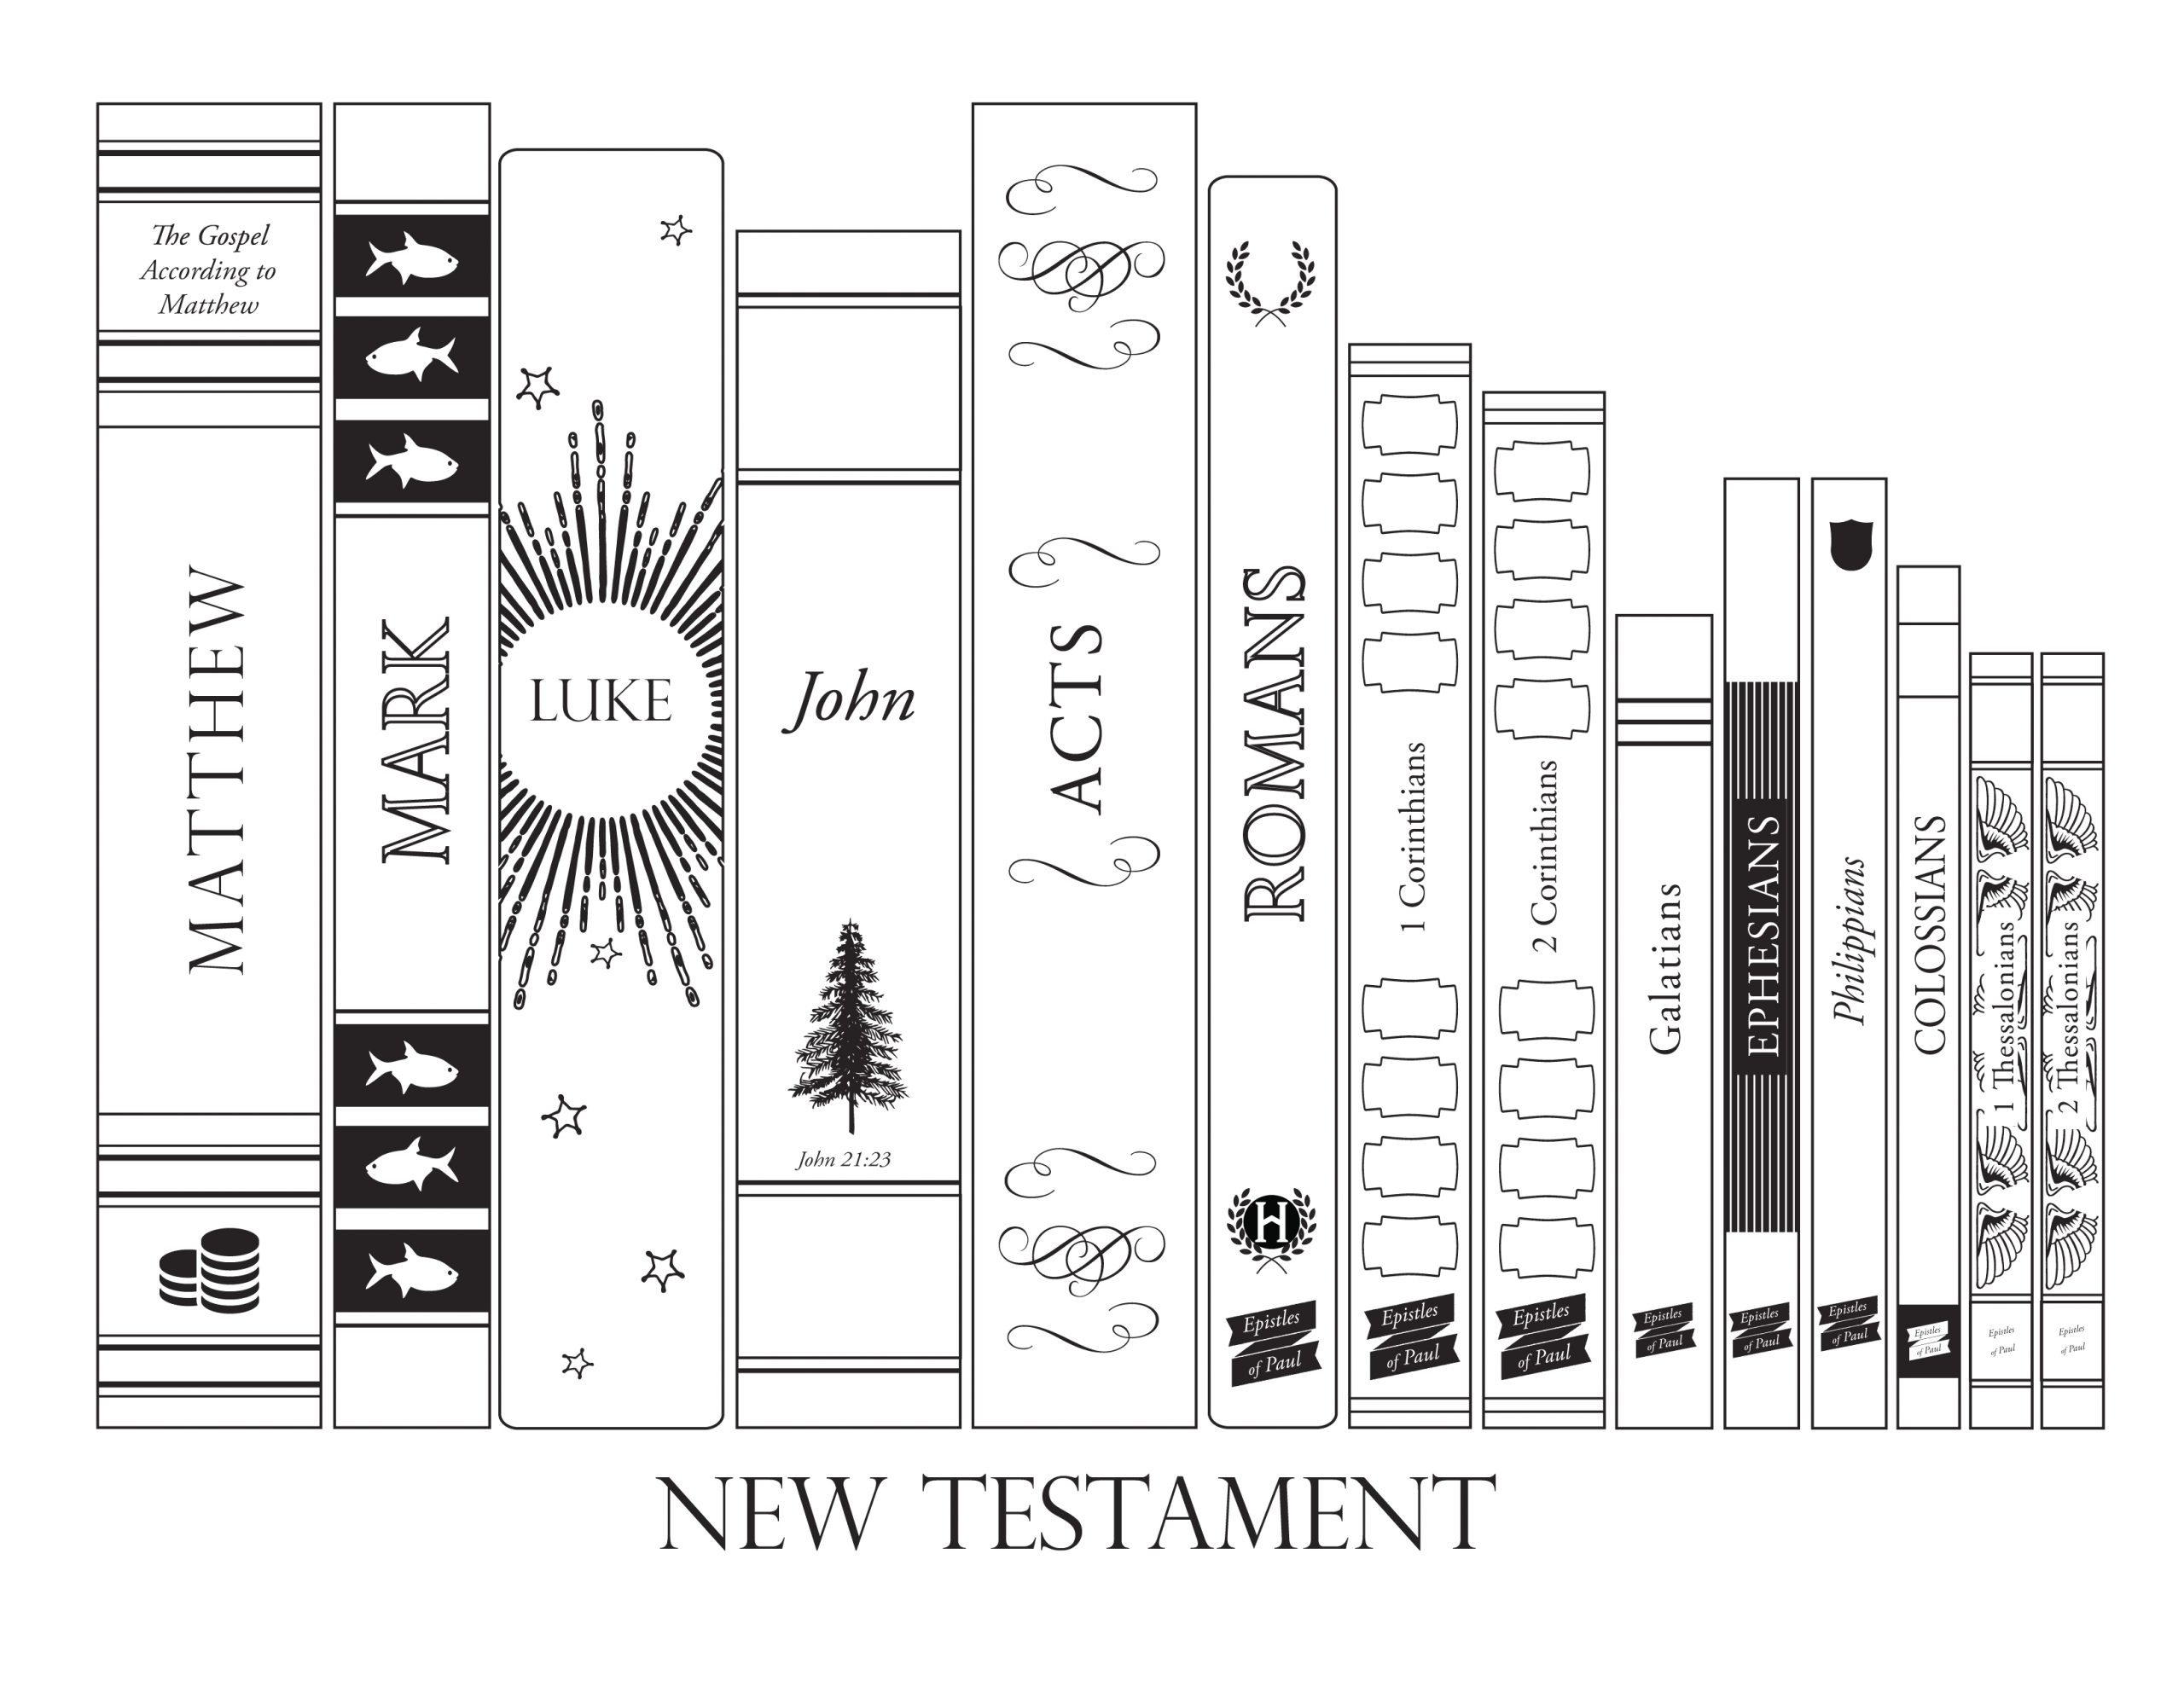 Books Of the New Testament Coloring Pages New Testament Bookshelf – the Gospel Home